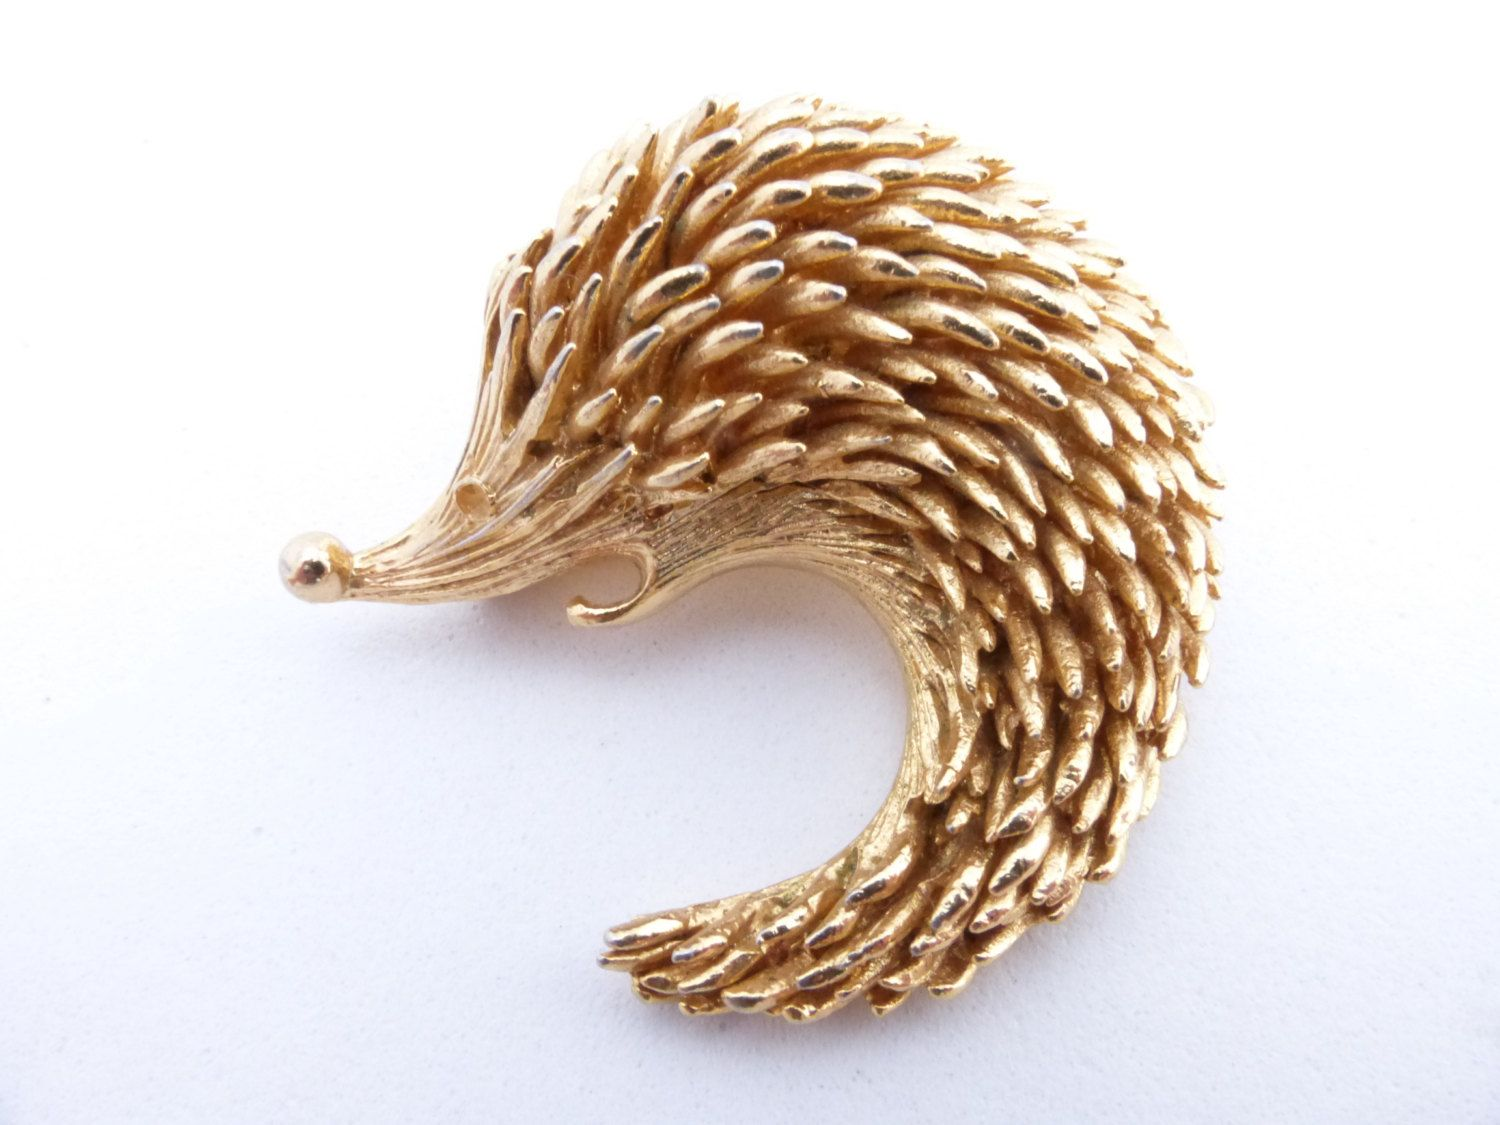 Orena Paris Hedgehog brooch detailed gold tone figural AA954 by MeyankeeGliterz on Etsy